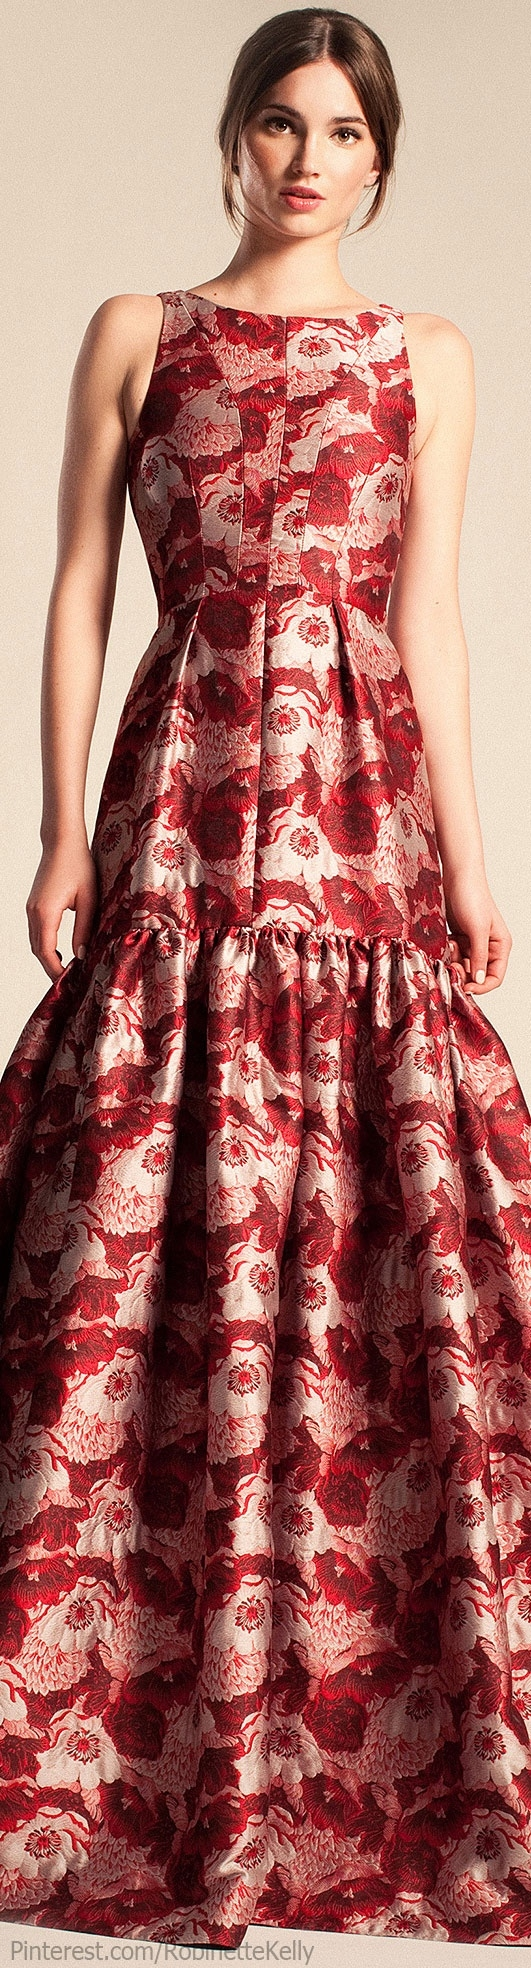 Temperley London | Temperley London | Pinterest | Rojo, Rosas y ...